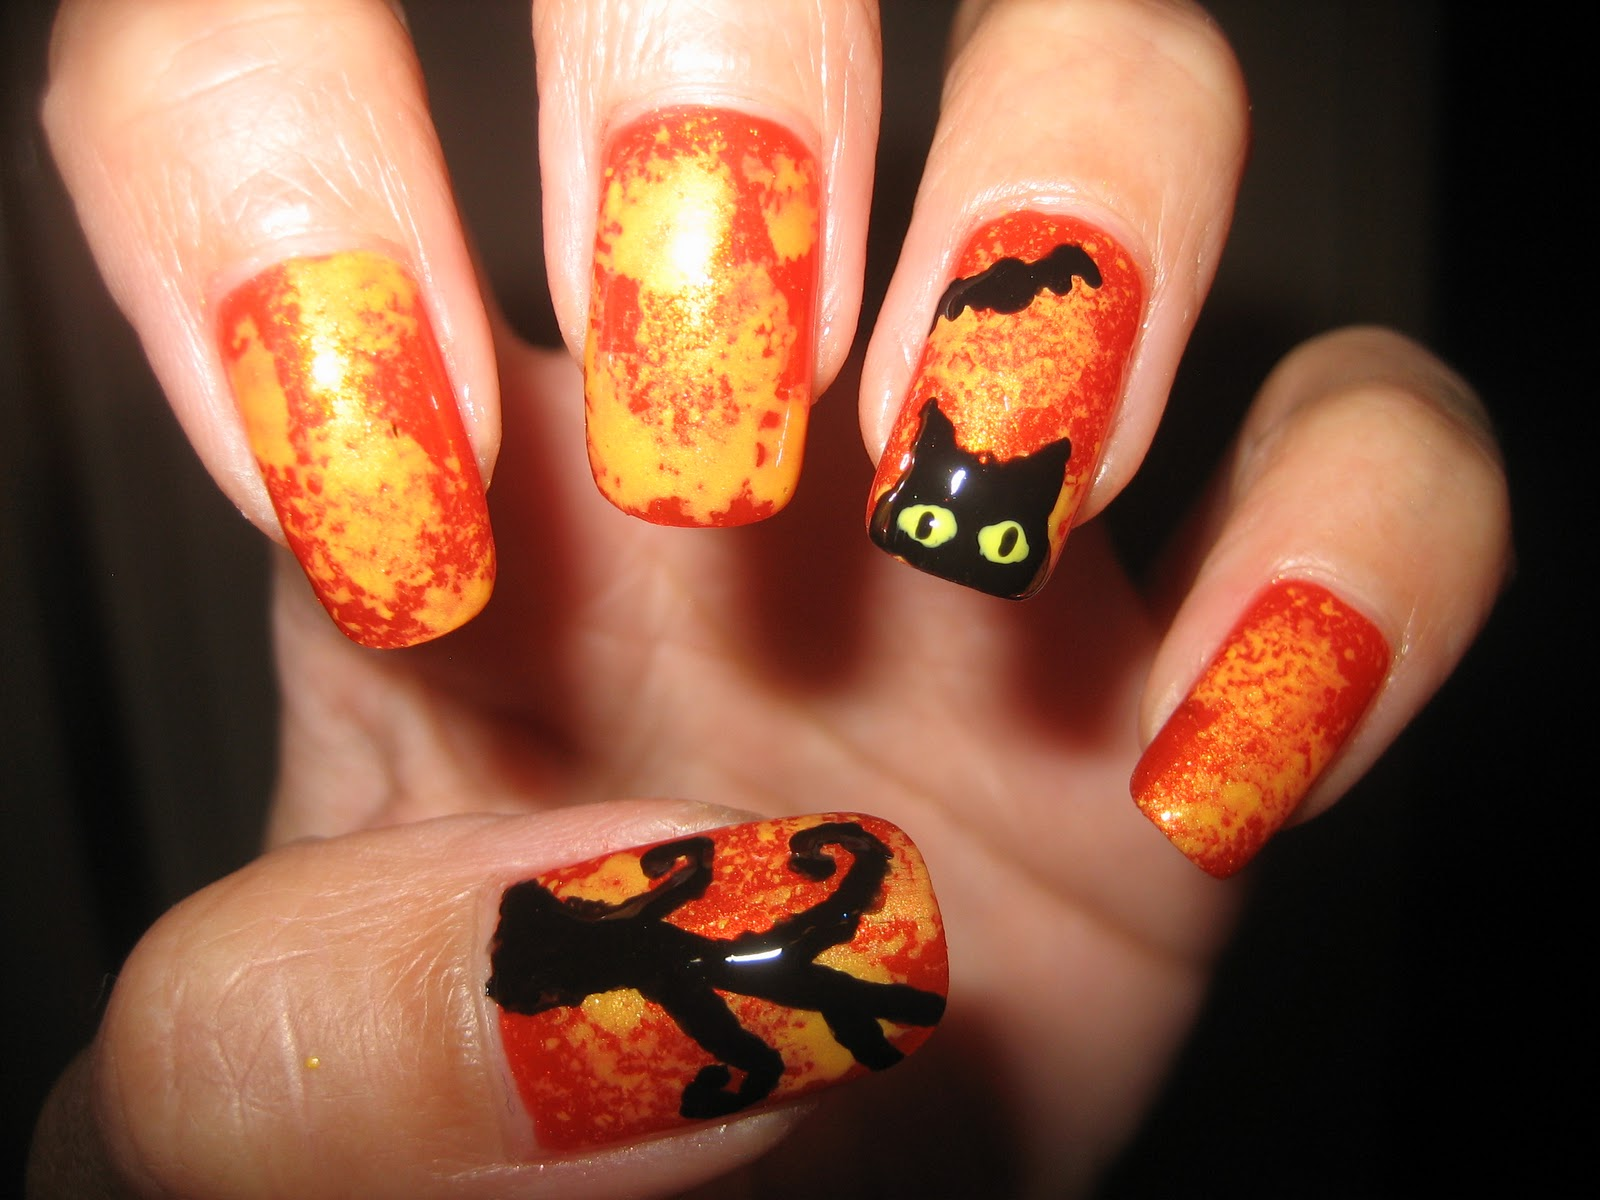 Awesome Nails By Nicole: October 2011